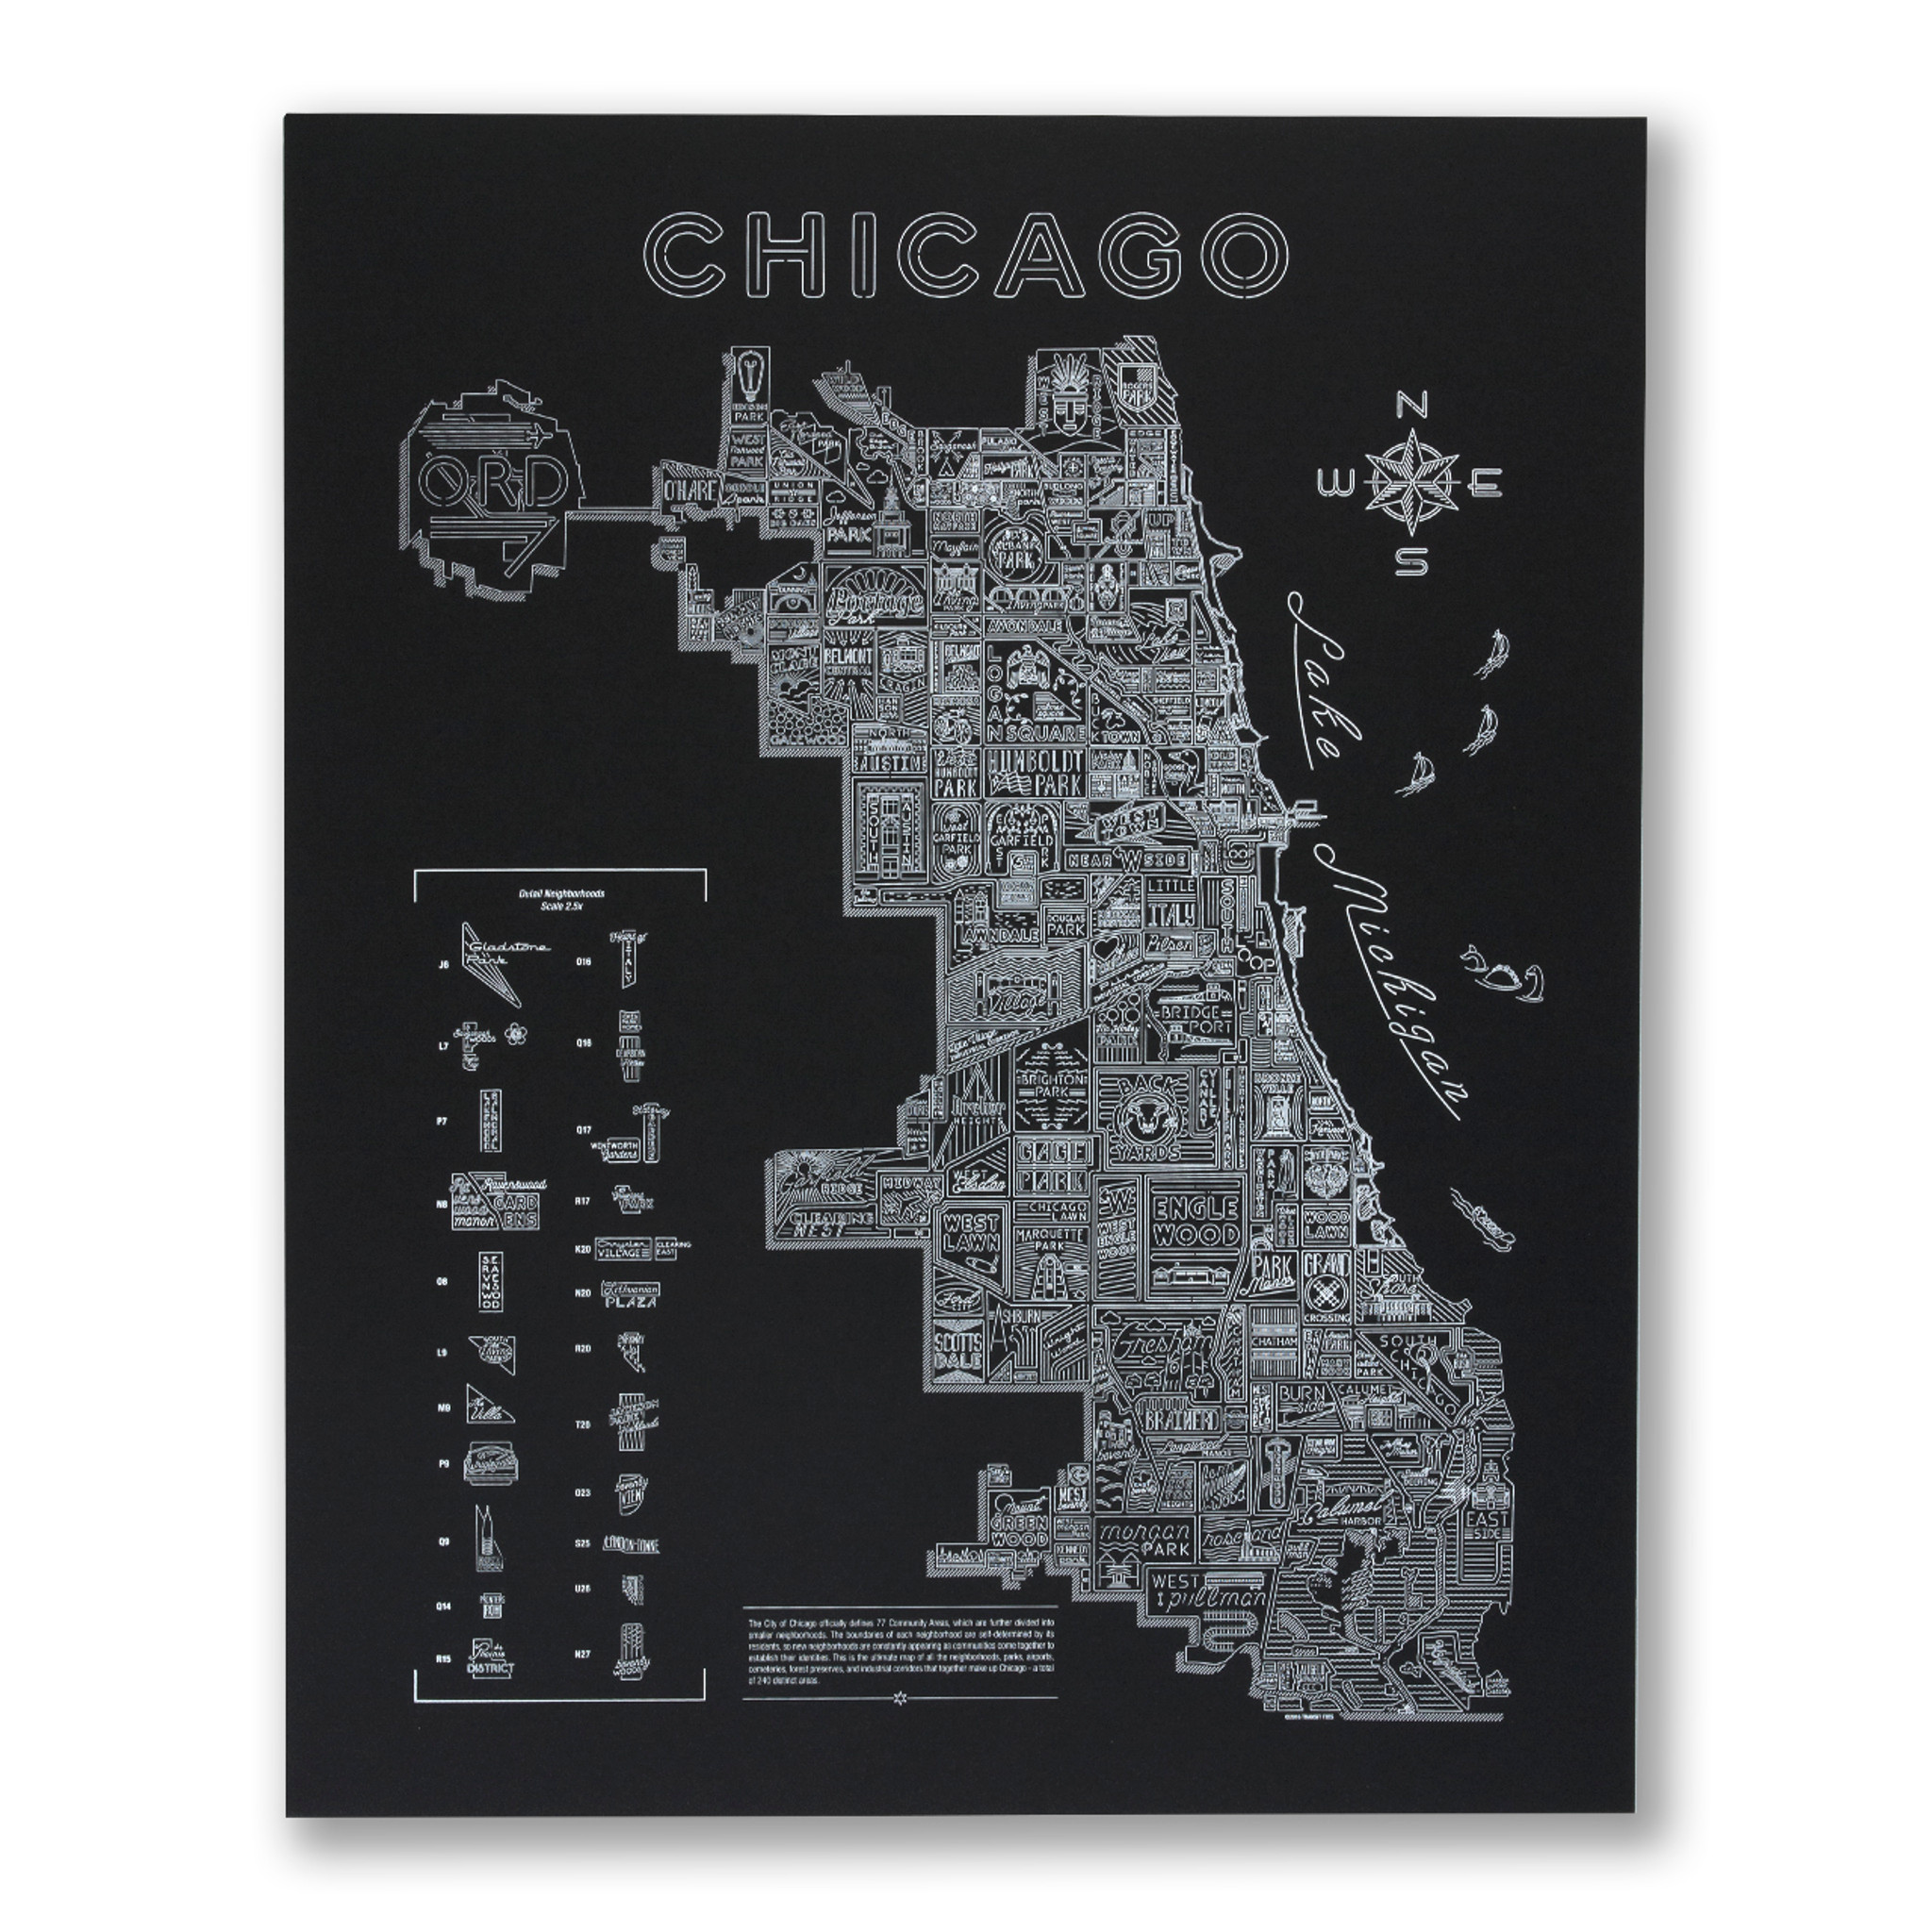 Neon Neighborhood Map of Chicago Screen Print on armour square, chicago community area map, peachtree city neighborhood map, good areas of chicago map, andersonville chicago map, sims 4 neighborhood map, magnificent mile, chicago stereotype map, chicago city street map, boystown, chicago, baltimore city neighborhood map, streets of chicago google map, south side, wicker park, chicago, new england google map, michigan avenue, city of boston map neighborhoods, ukrainian village, ethnic chicago neighborhoods map, city of illinois map, detailed downtown chicago map, chicago neighborhoods crime map, old town, little italy, chicago, new york city neighborhood map, chicago illinois map, near west side, robert taylor homes, chicago street guide map, california neighborhood map, springfield neighborhood map,